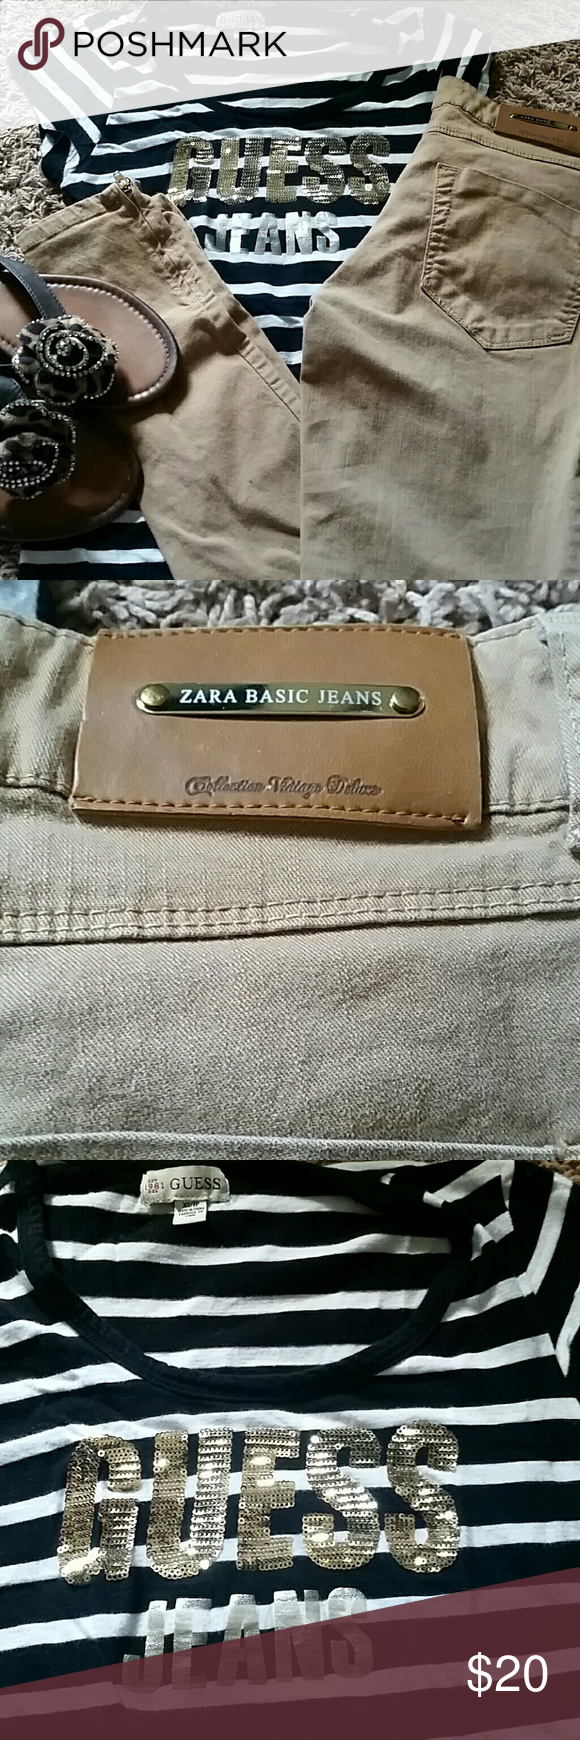 ZARA skinny jeans, GUESS shirt, and sand Selling as a bundle of;  ZARA skinny jeans  size 2,  GUESS strip shirt size XS, and  YOKI leopard print flip flops. Zara Jeans Skinny